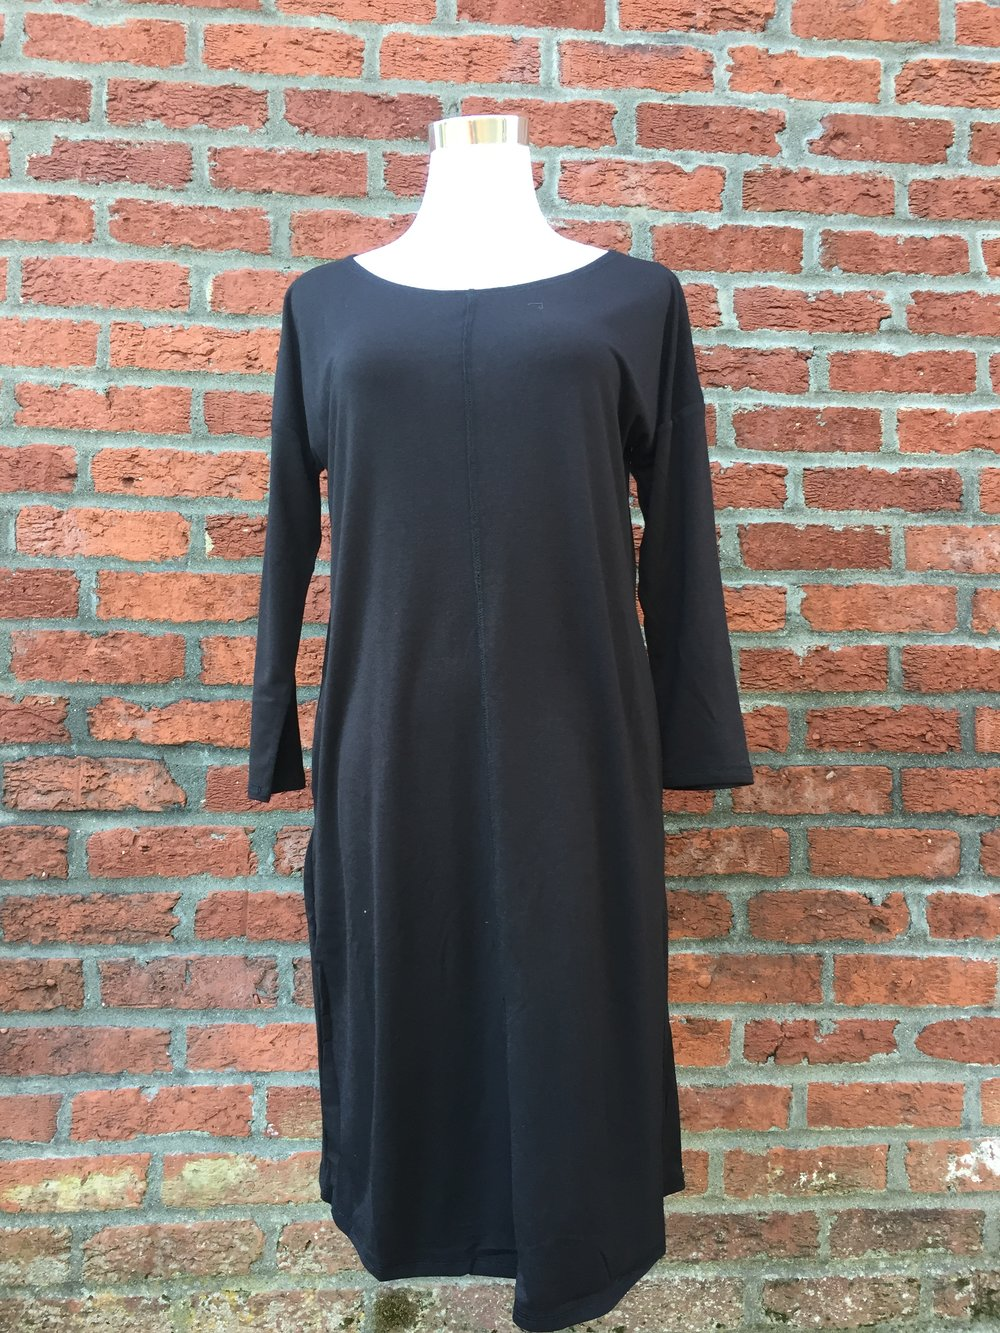 Basic Dress w/ Seam (Black, Navy and Grey $28)